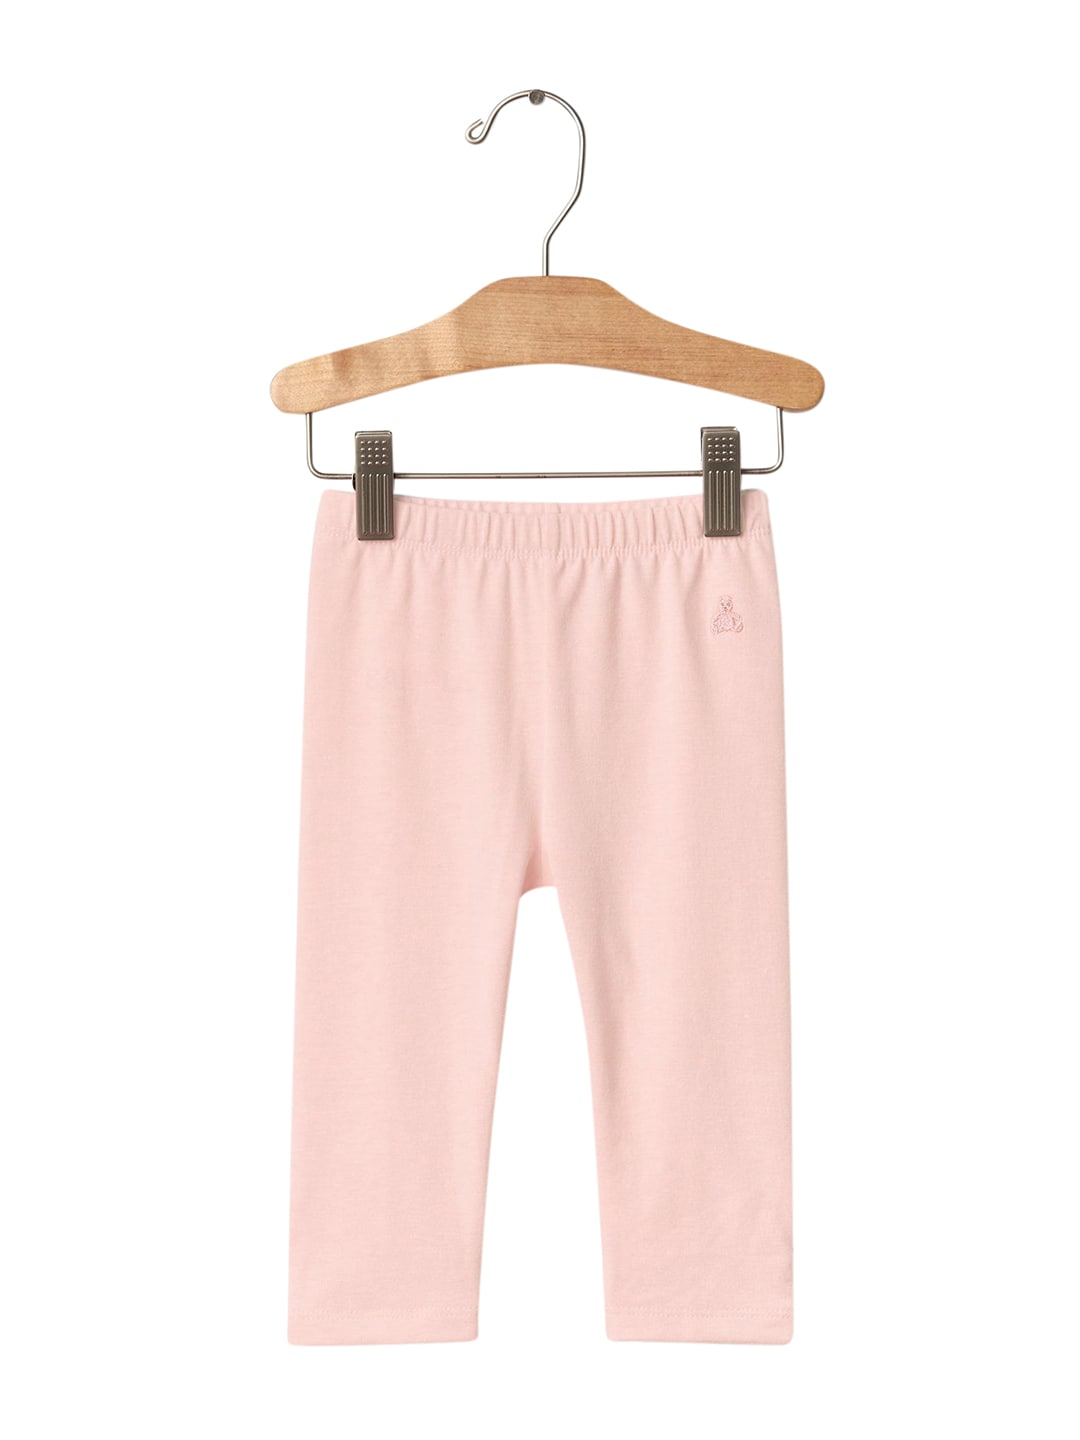 fd123c2cbfac Gap Boys Girls - Buy Gap Boys Girls online in India